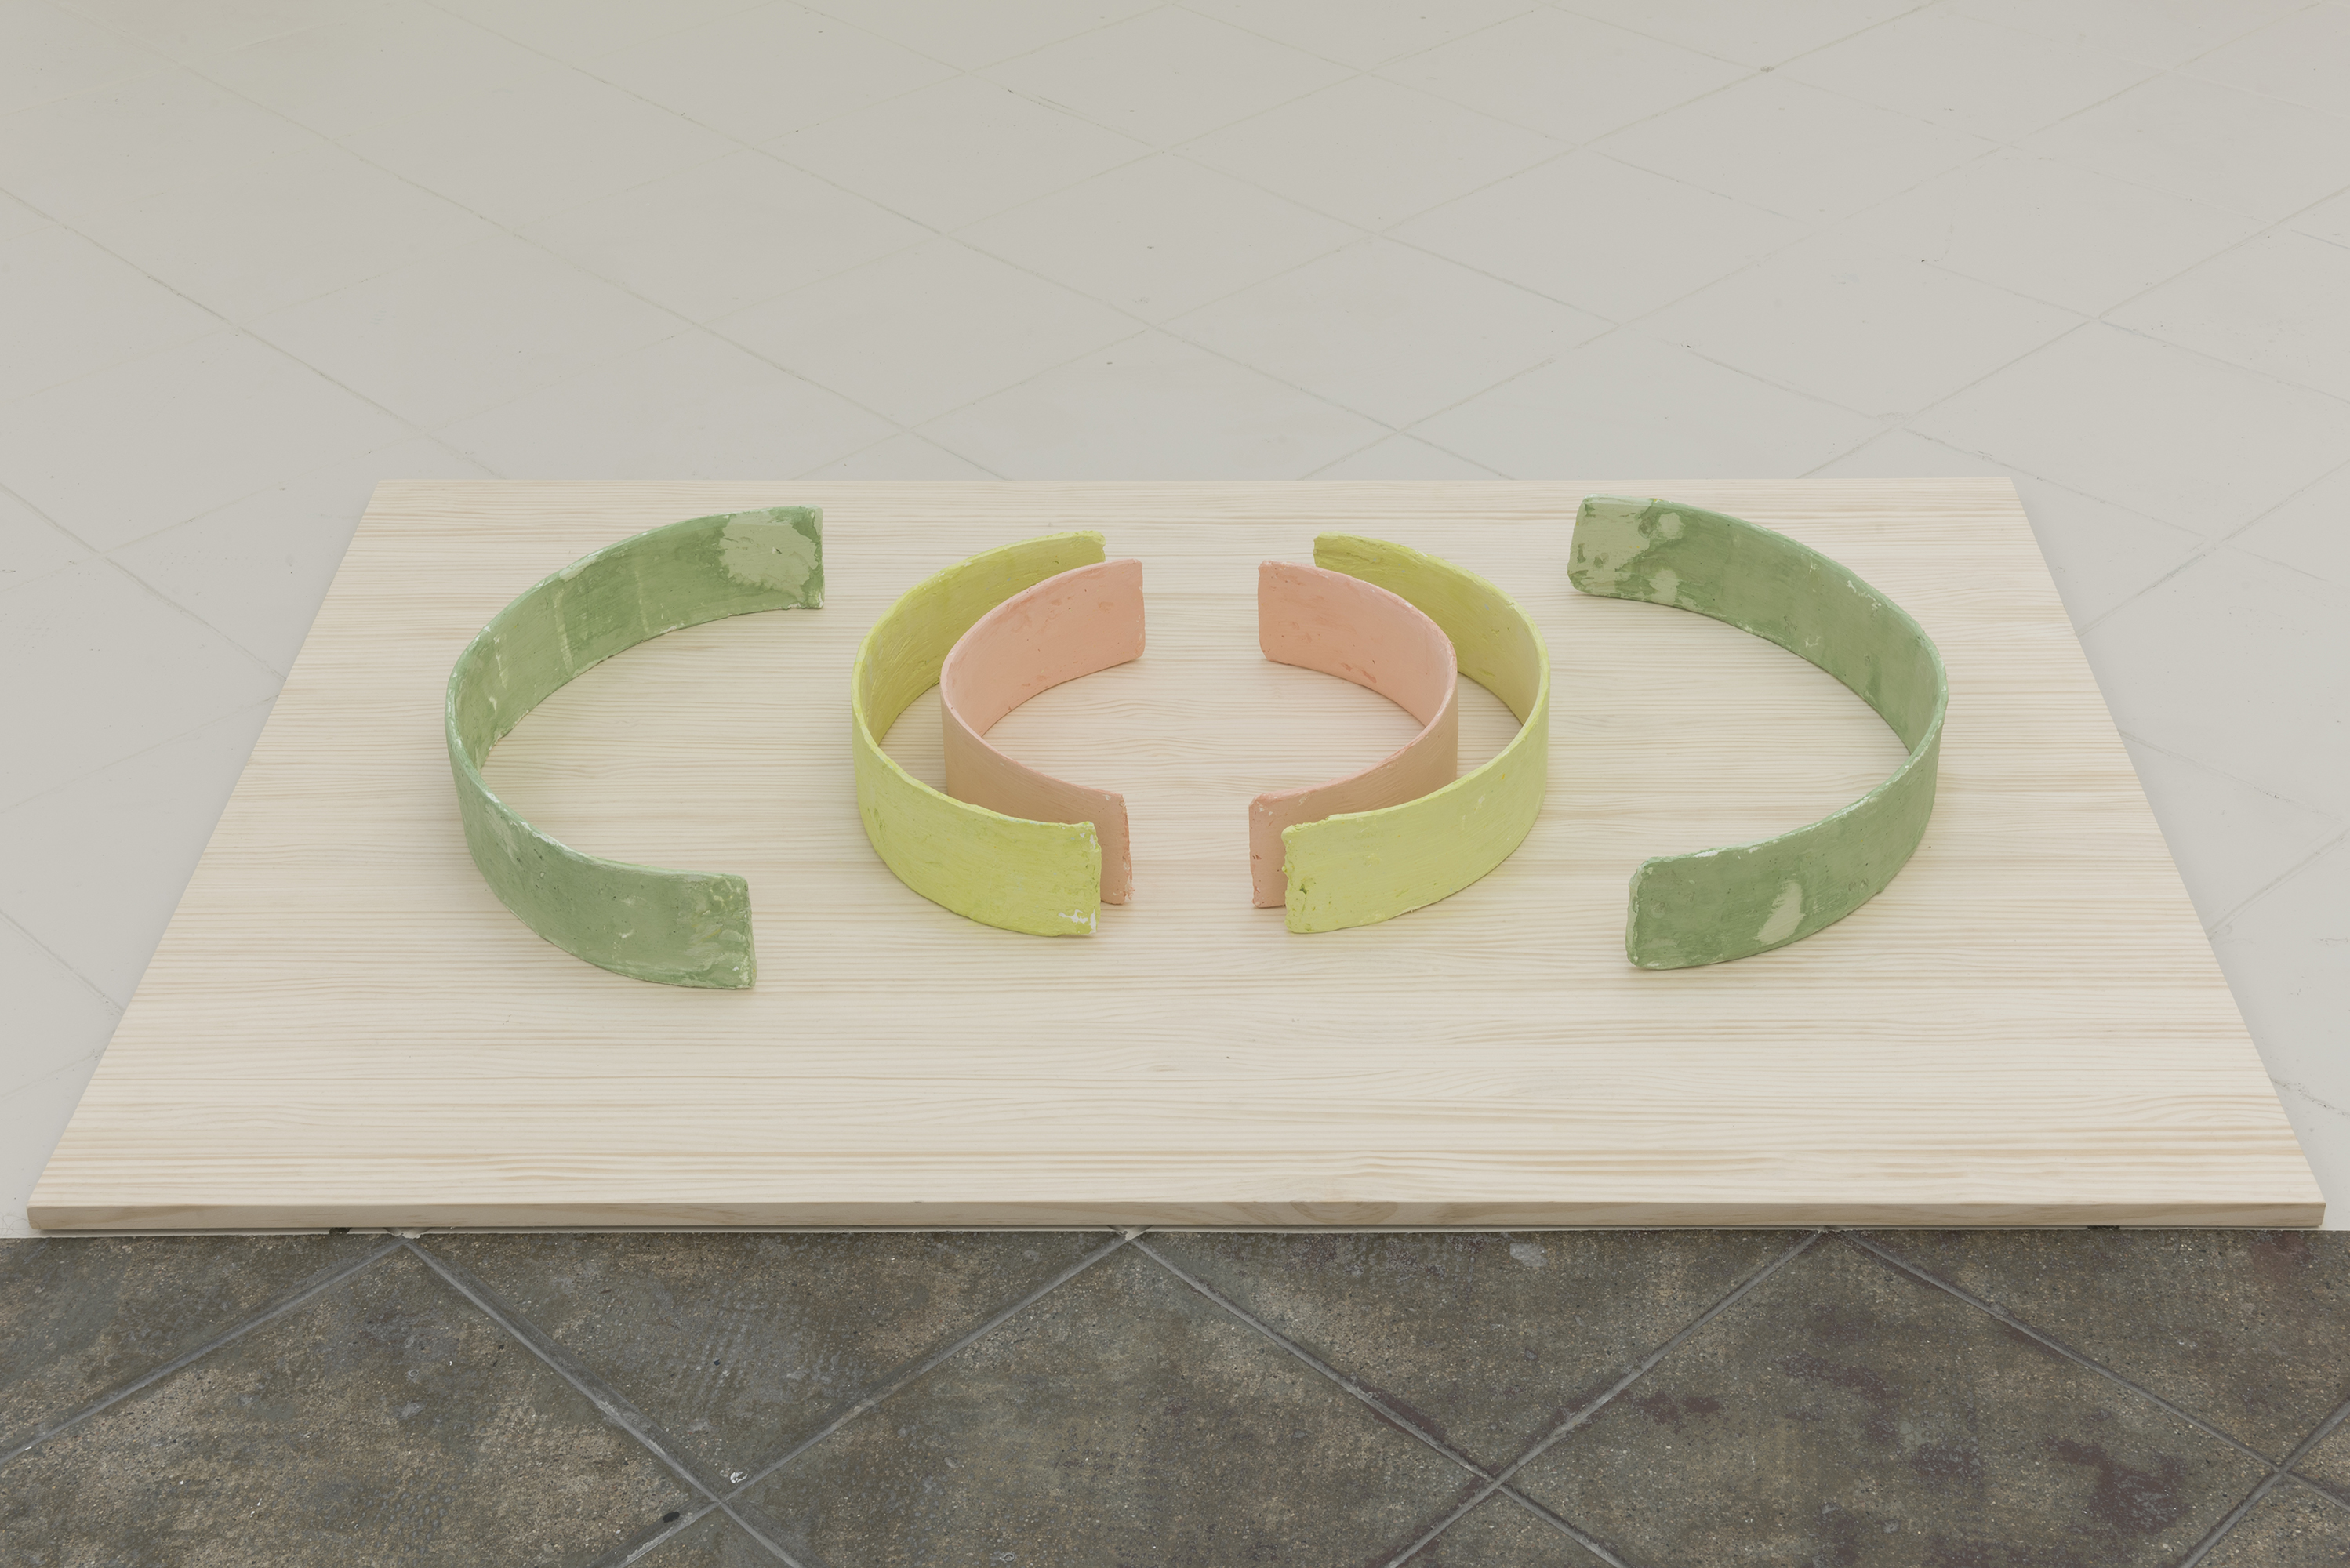 Maqueta #4 (Rings), 2015 | Formes Absents | ProjecteSD